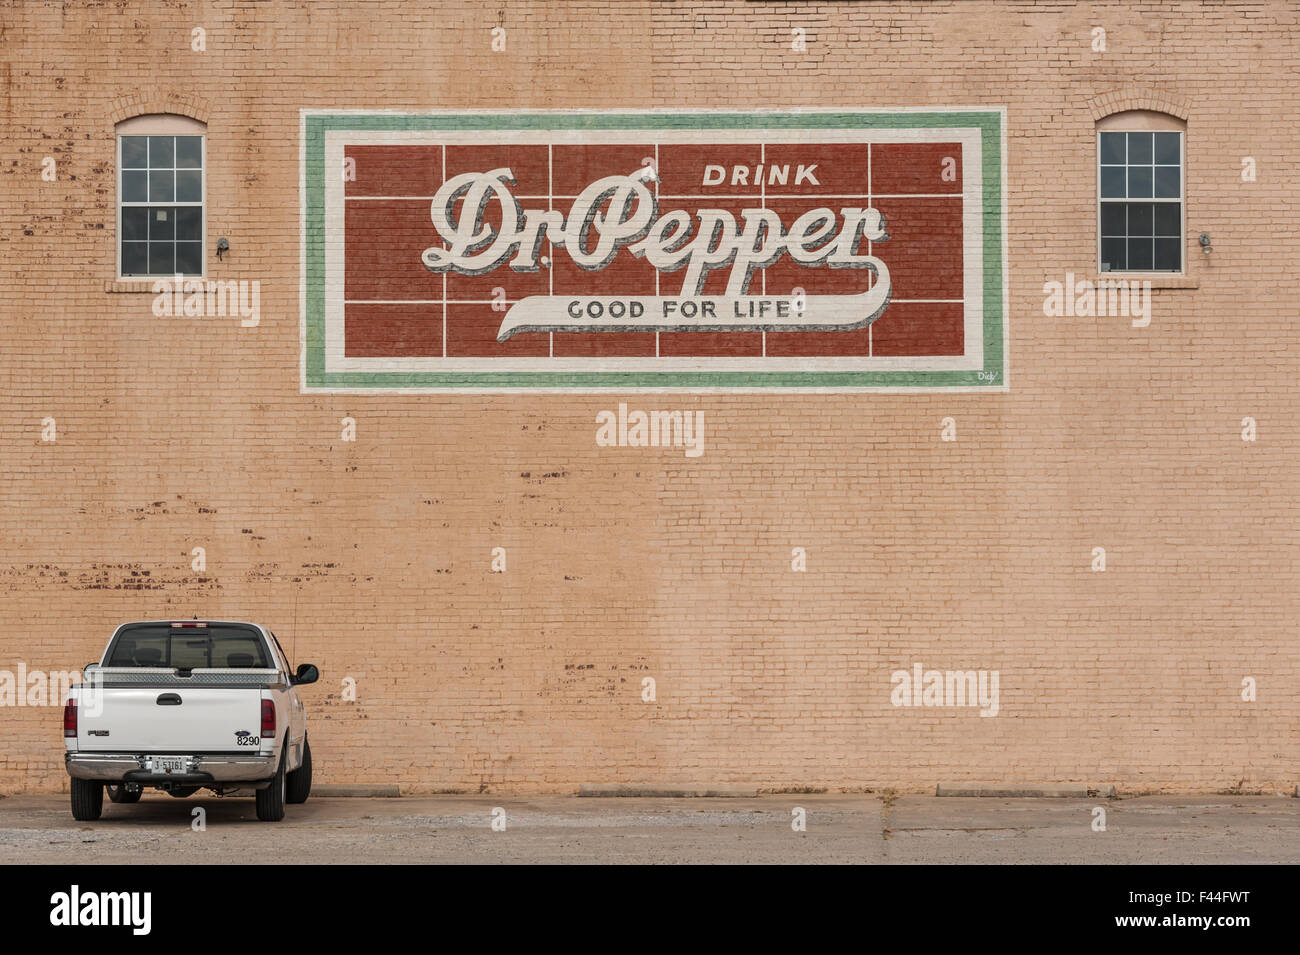 Drink Dr Pepper vintage wall mural on painted brick building in